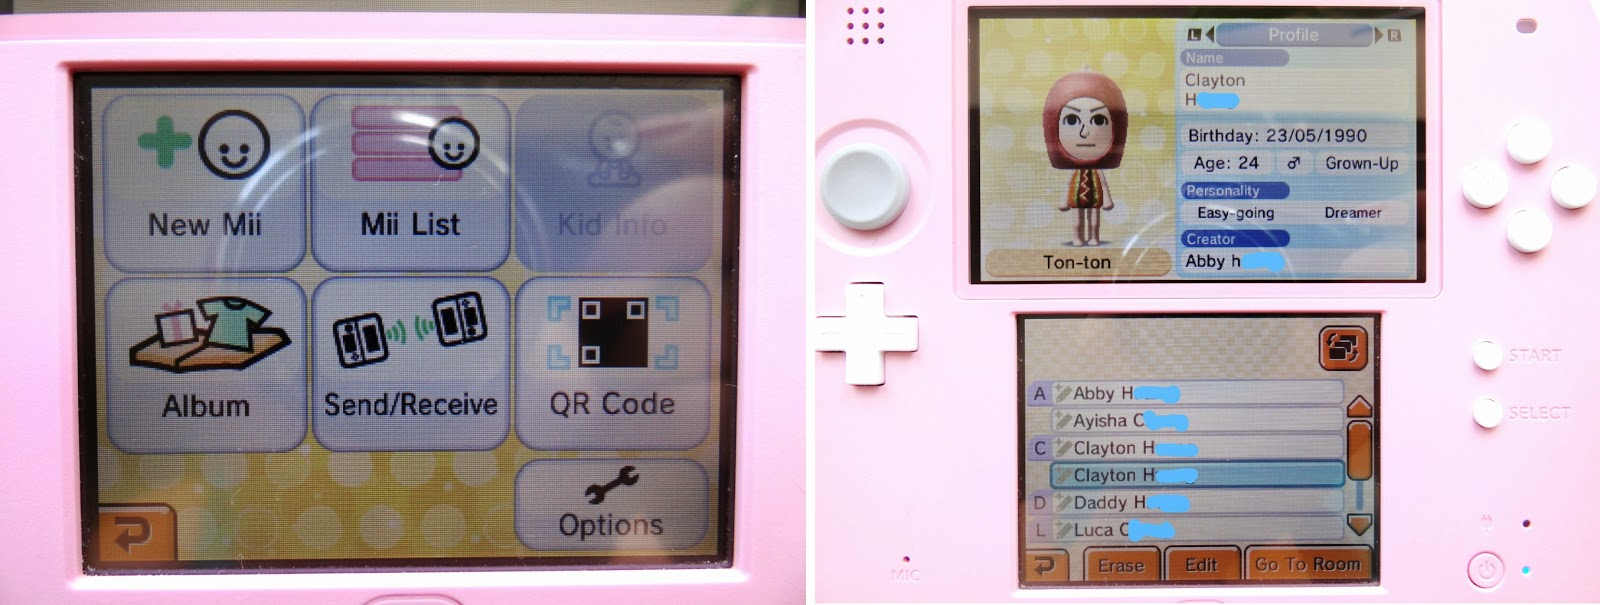 Nintendo 3DS new game, Tomodachi Life, Nintendo Mii game